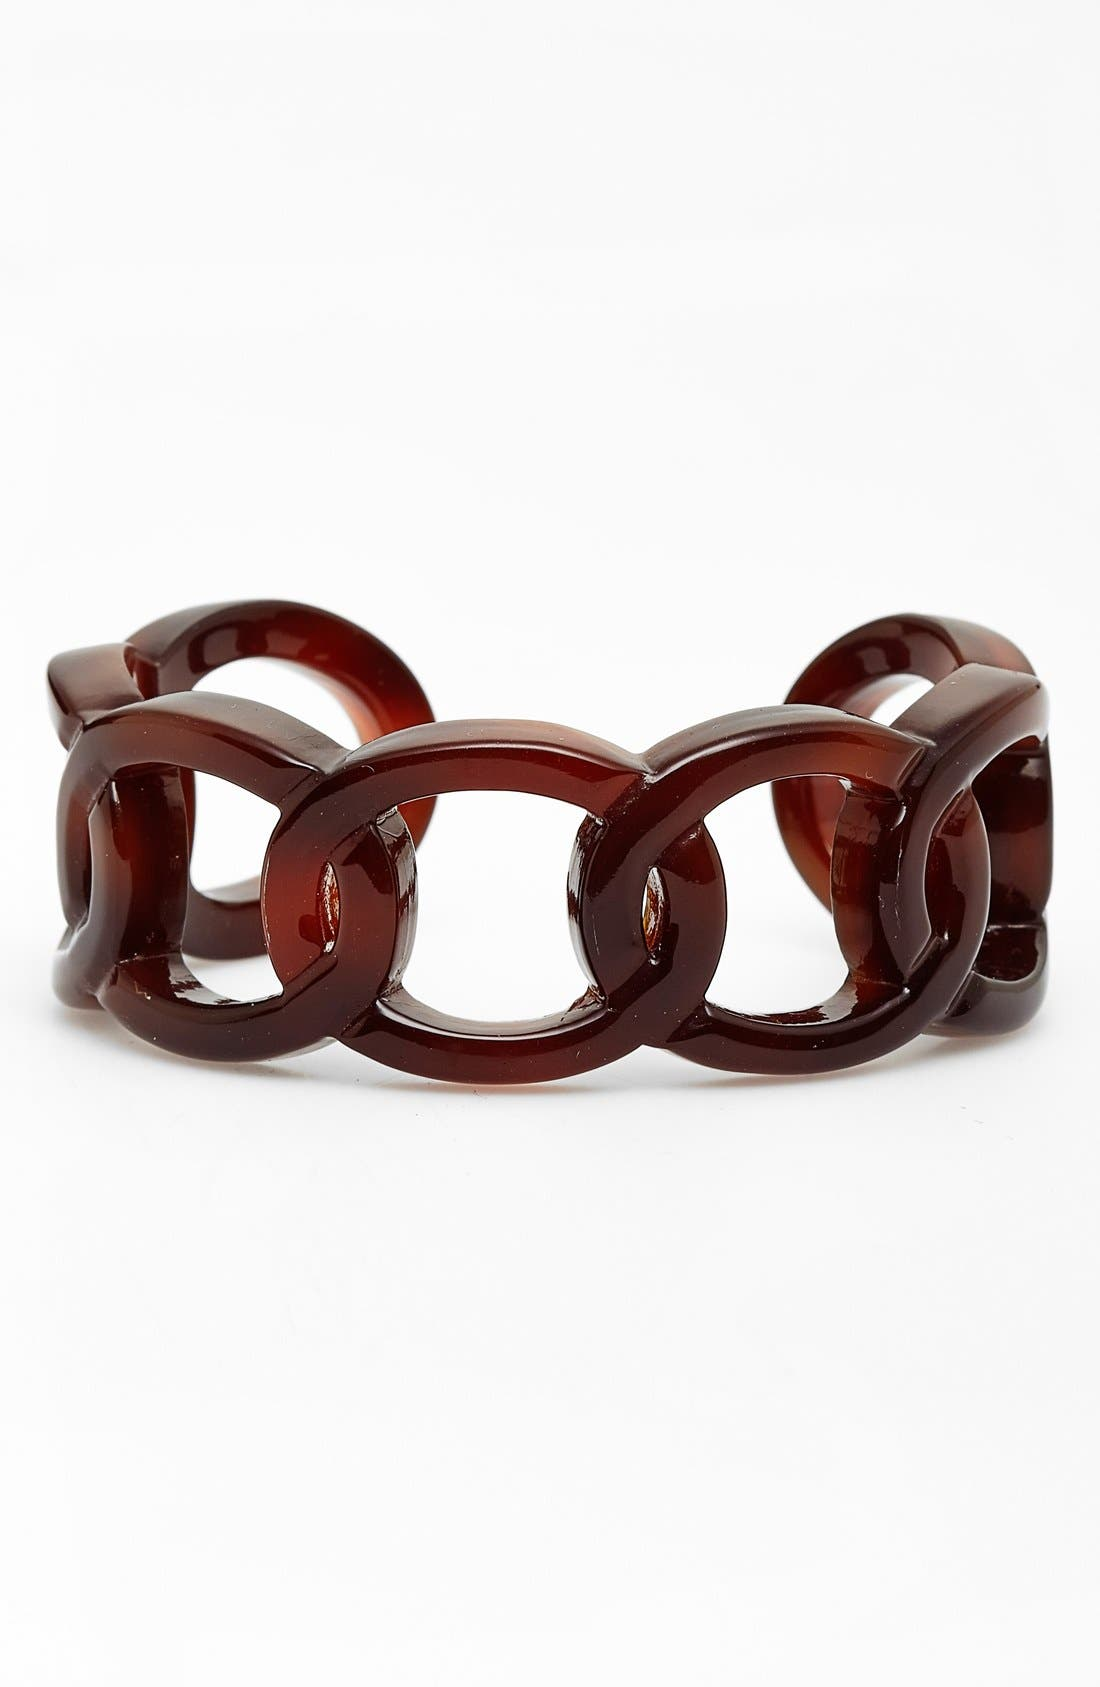 'Layla' Link Cuff,                         Main,                         color,